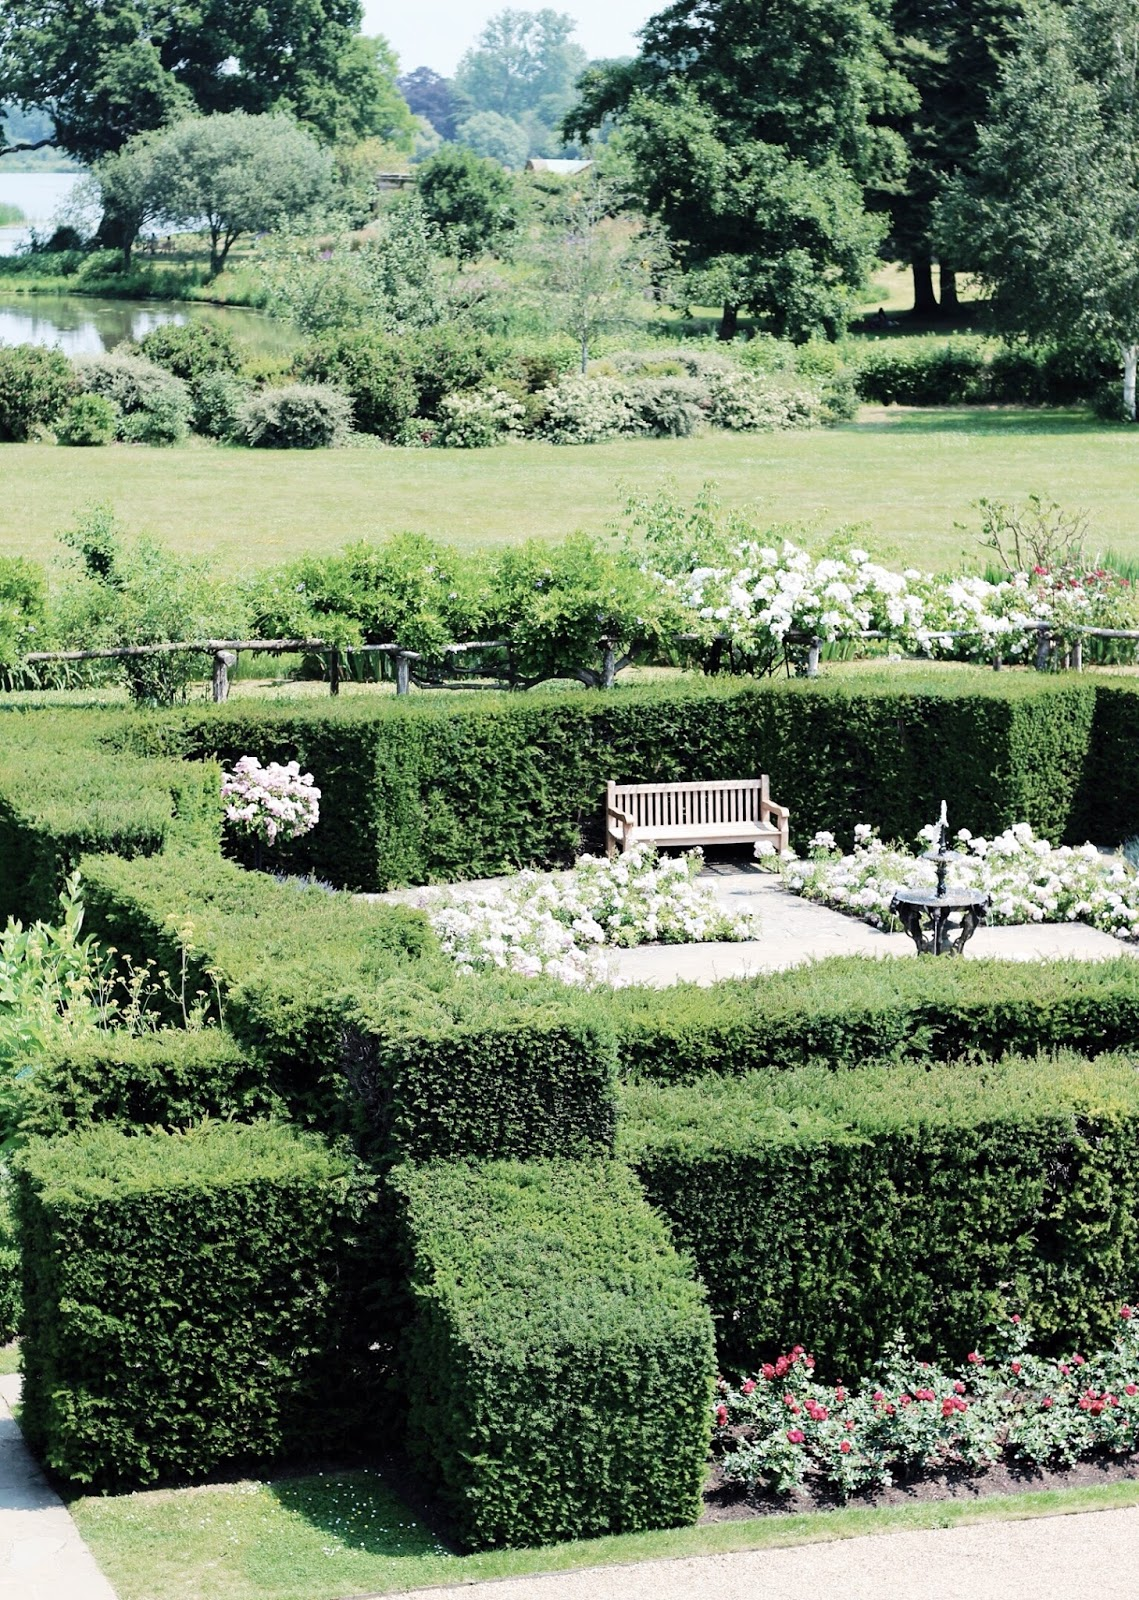 Beautiful gardens at Hever Castle in summer